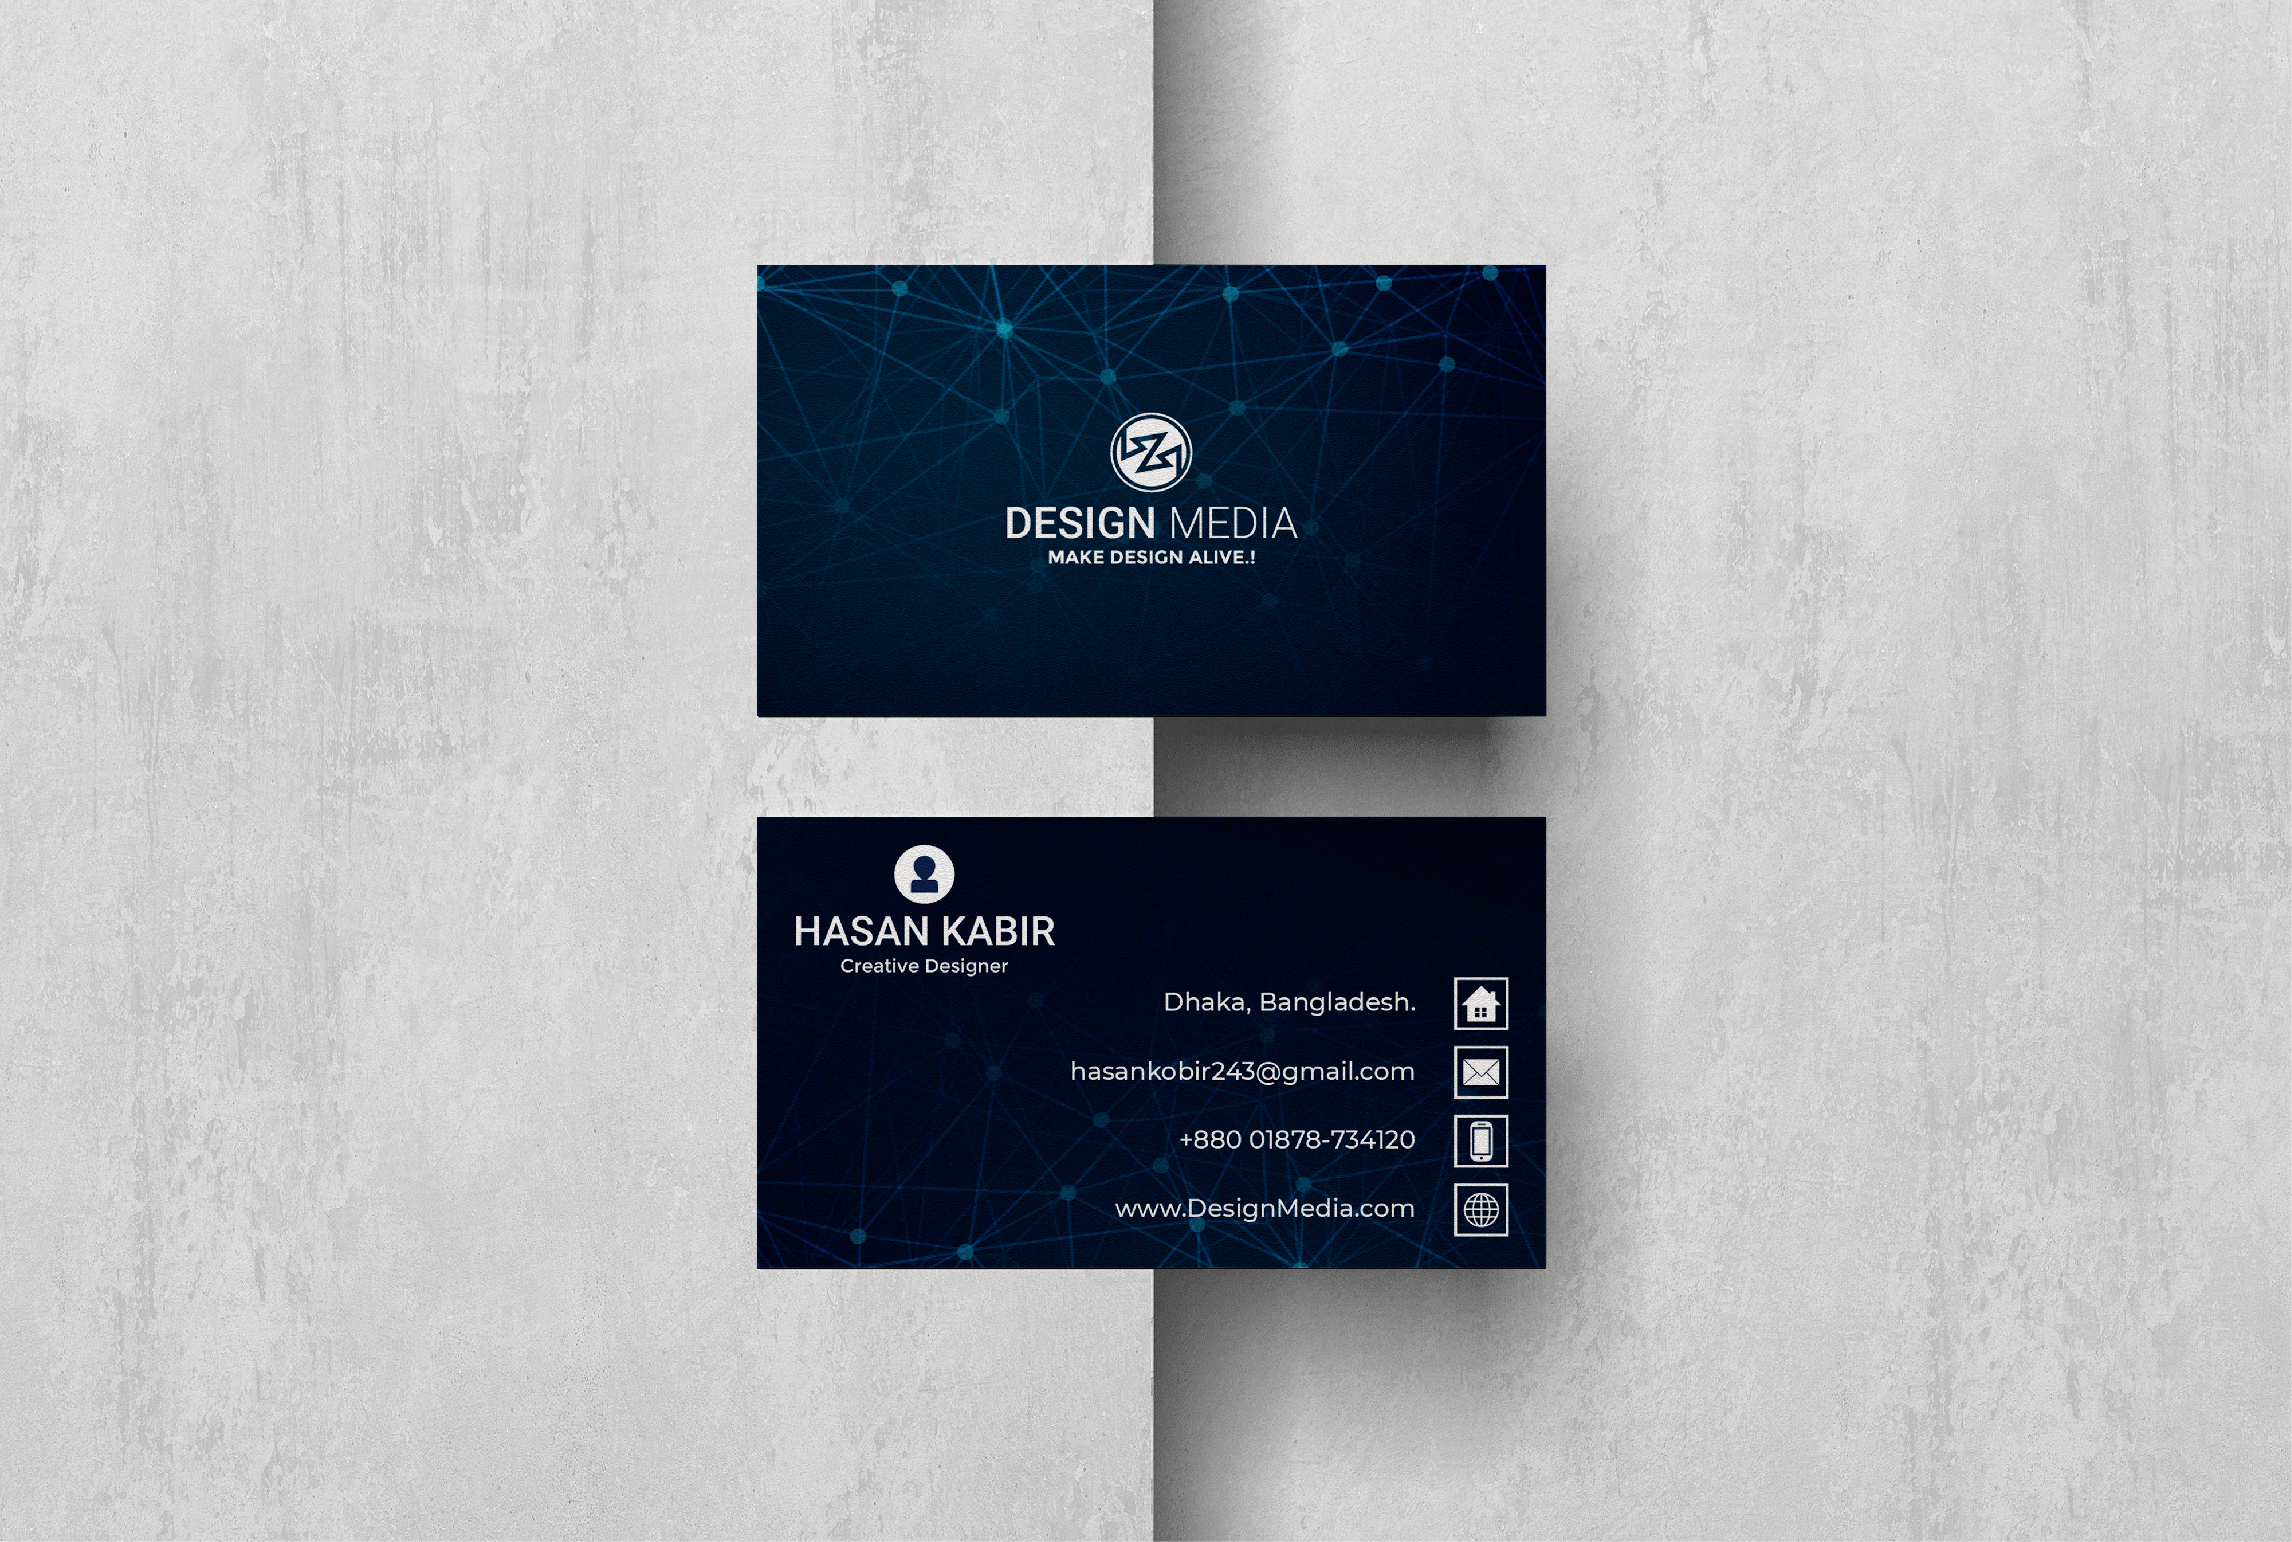 I Will Design Professional Business Card in 24 Hours